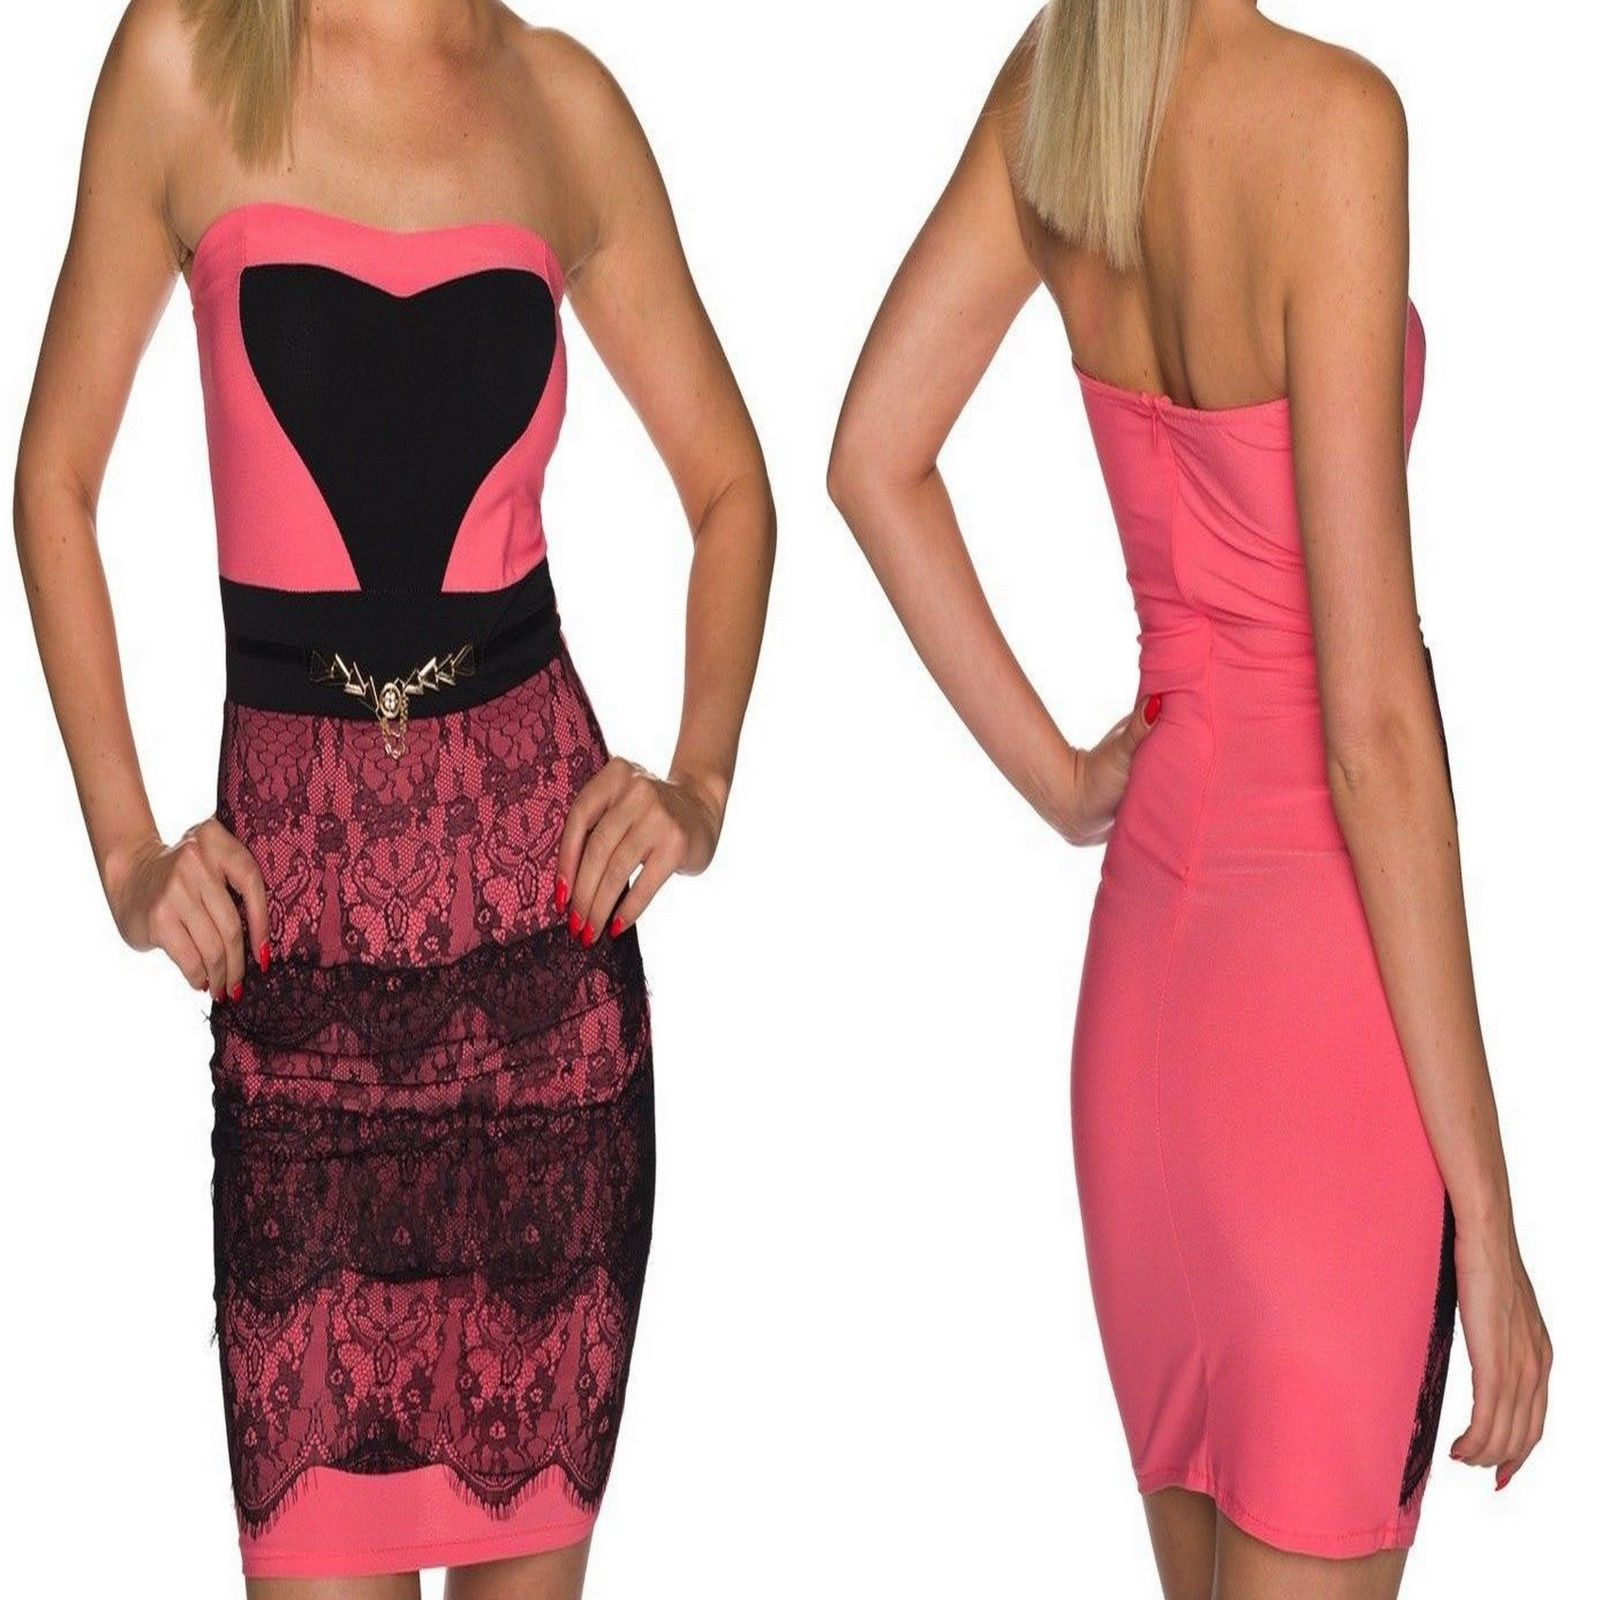 d803a5c019 SEXY WOMENS PINK STRAPLESS BODYCON MINI DRESS WITH BLACK CONTRASTING LACE  LACING